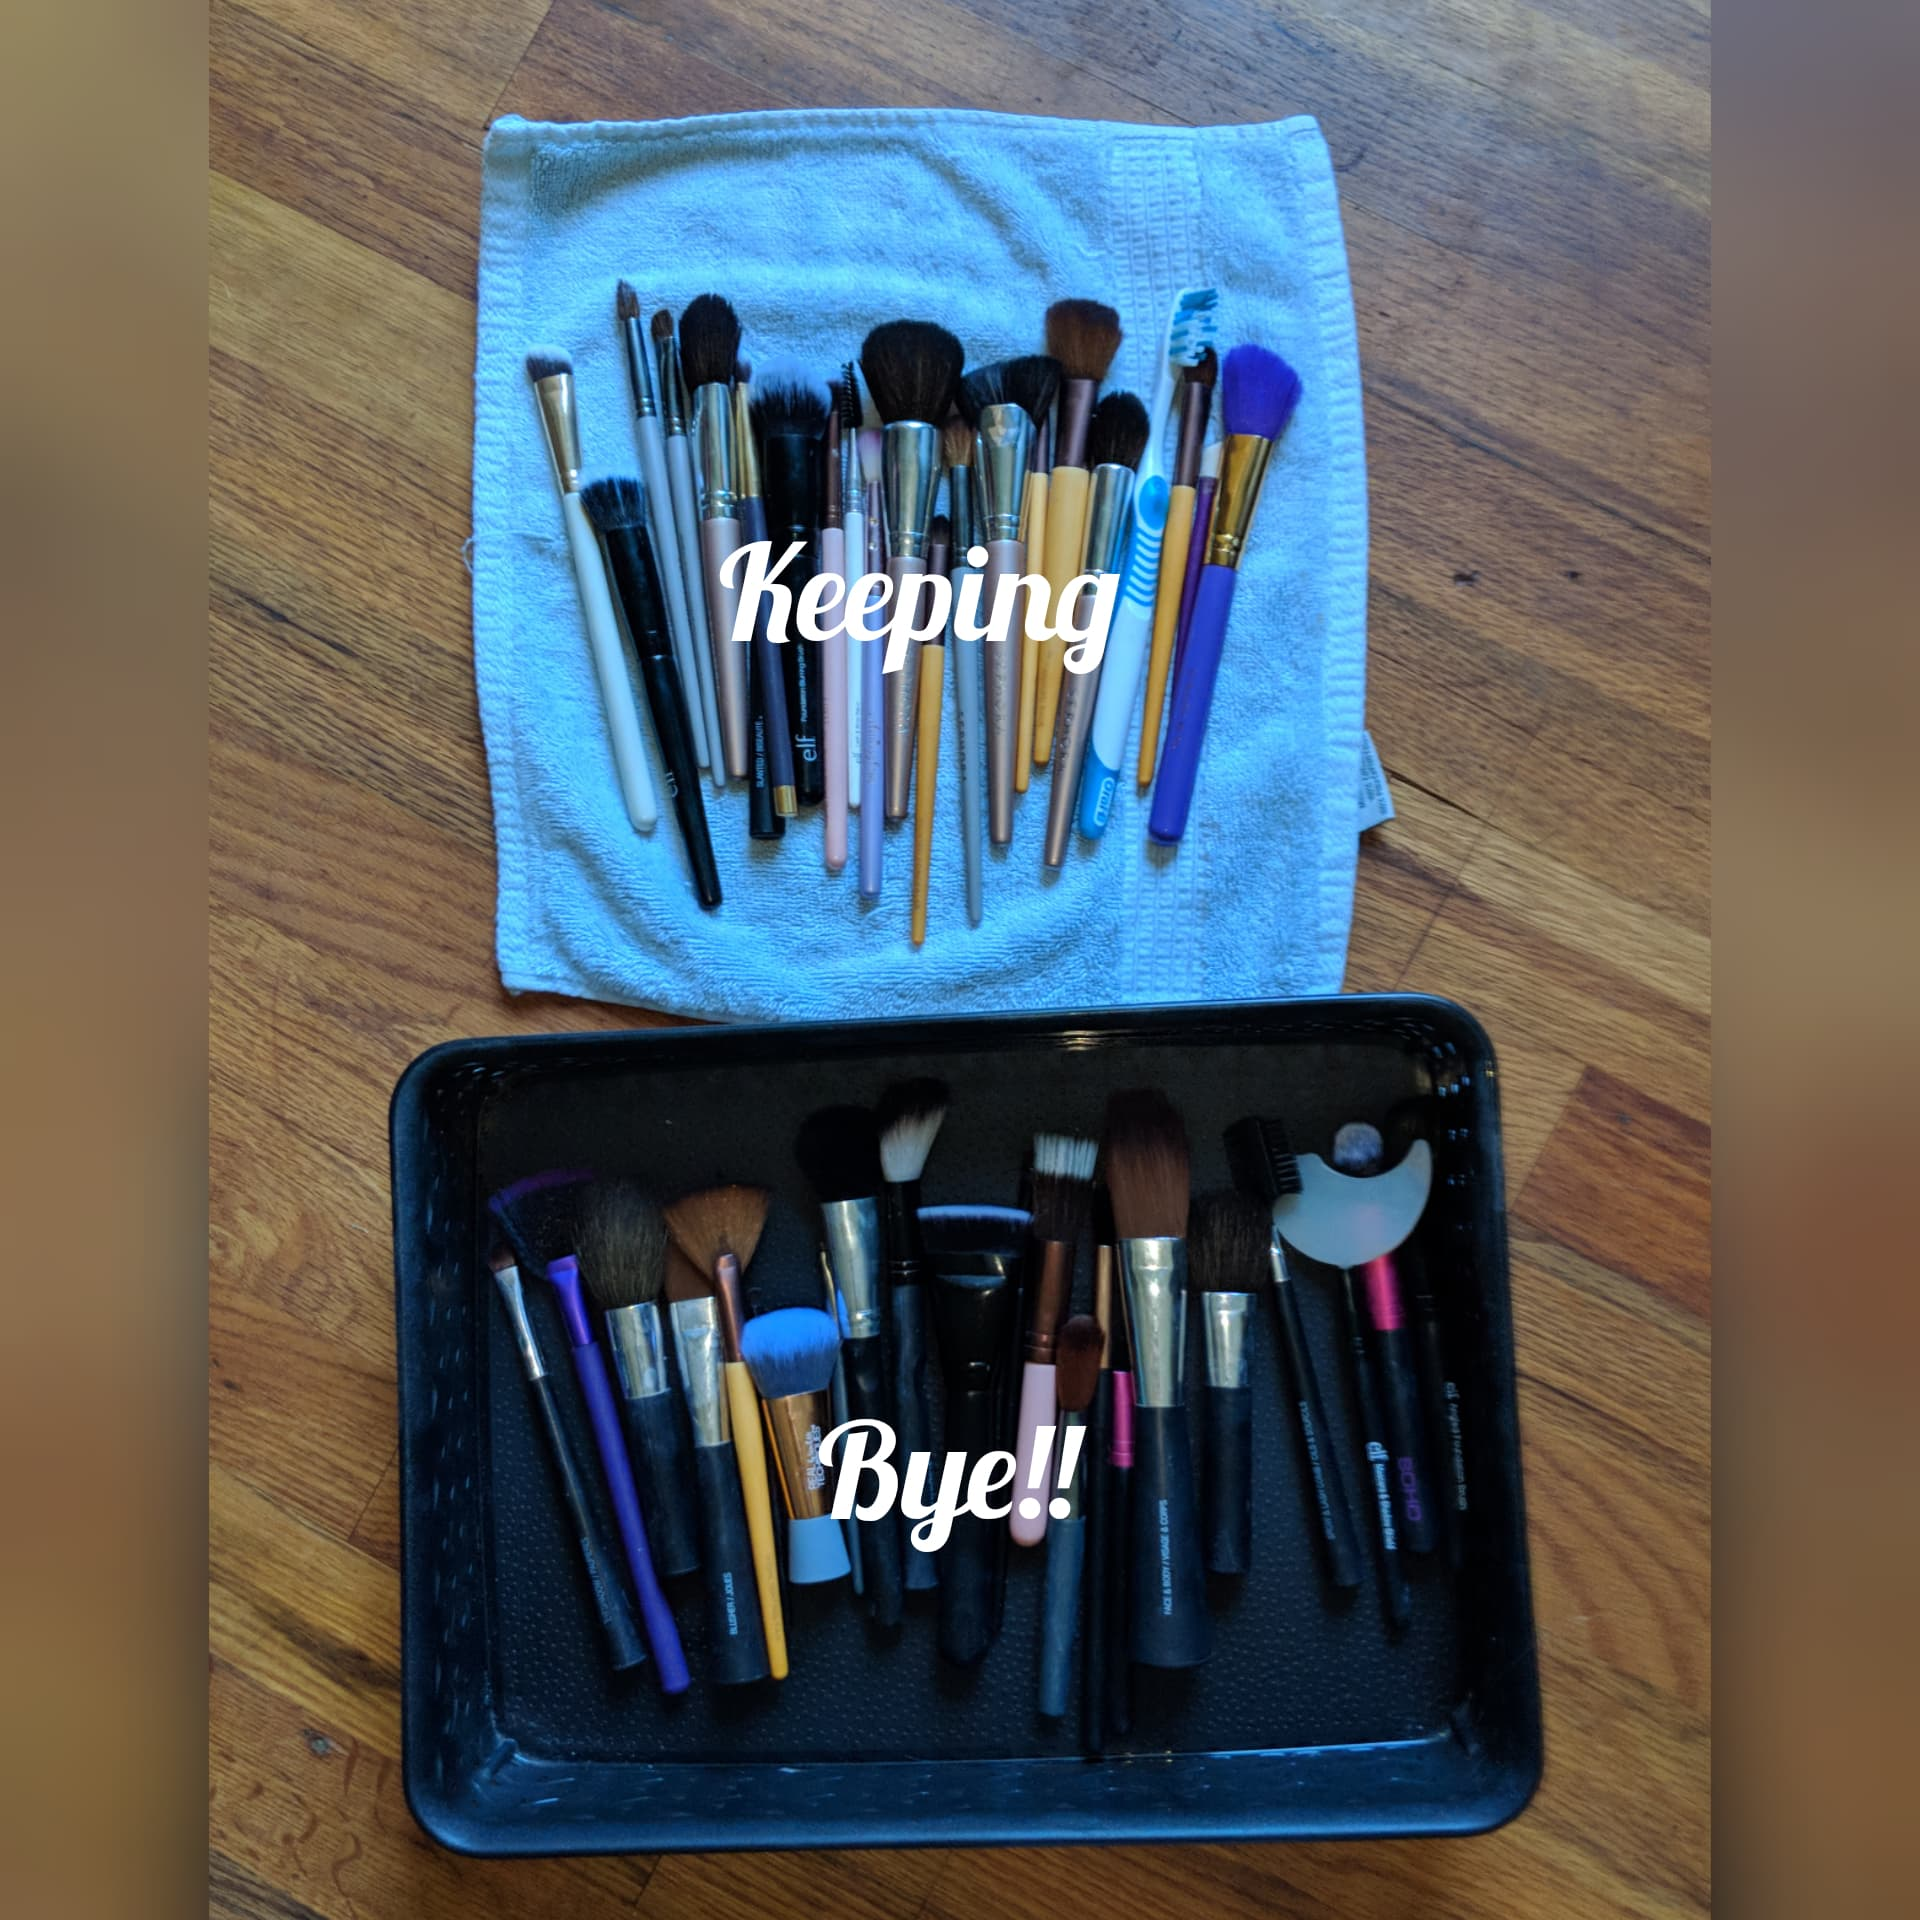 I definitly kept a few duplicate brushes, but this is something I splurge on. haha